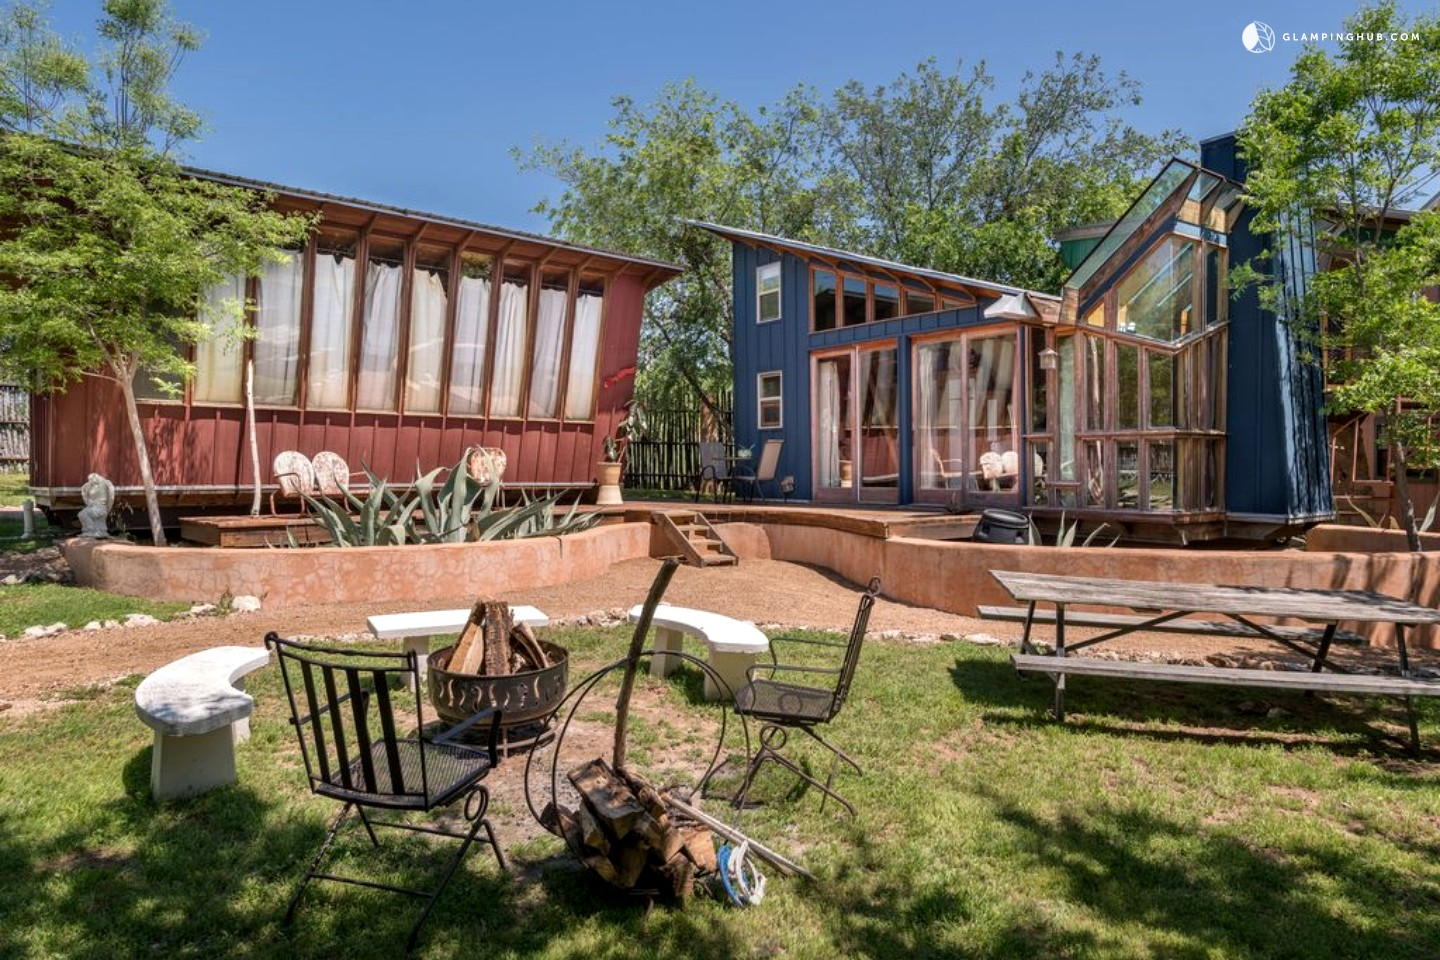 Eco cabin in texas hill country offer yoga retreats near for Cabin rentals near san antonio tx